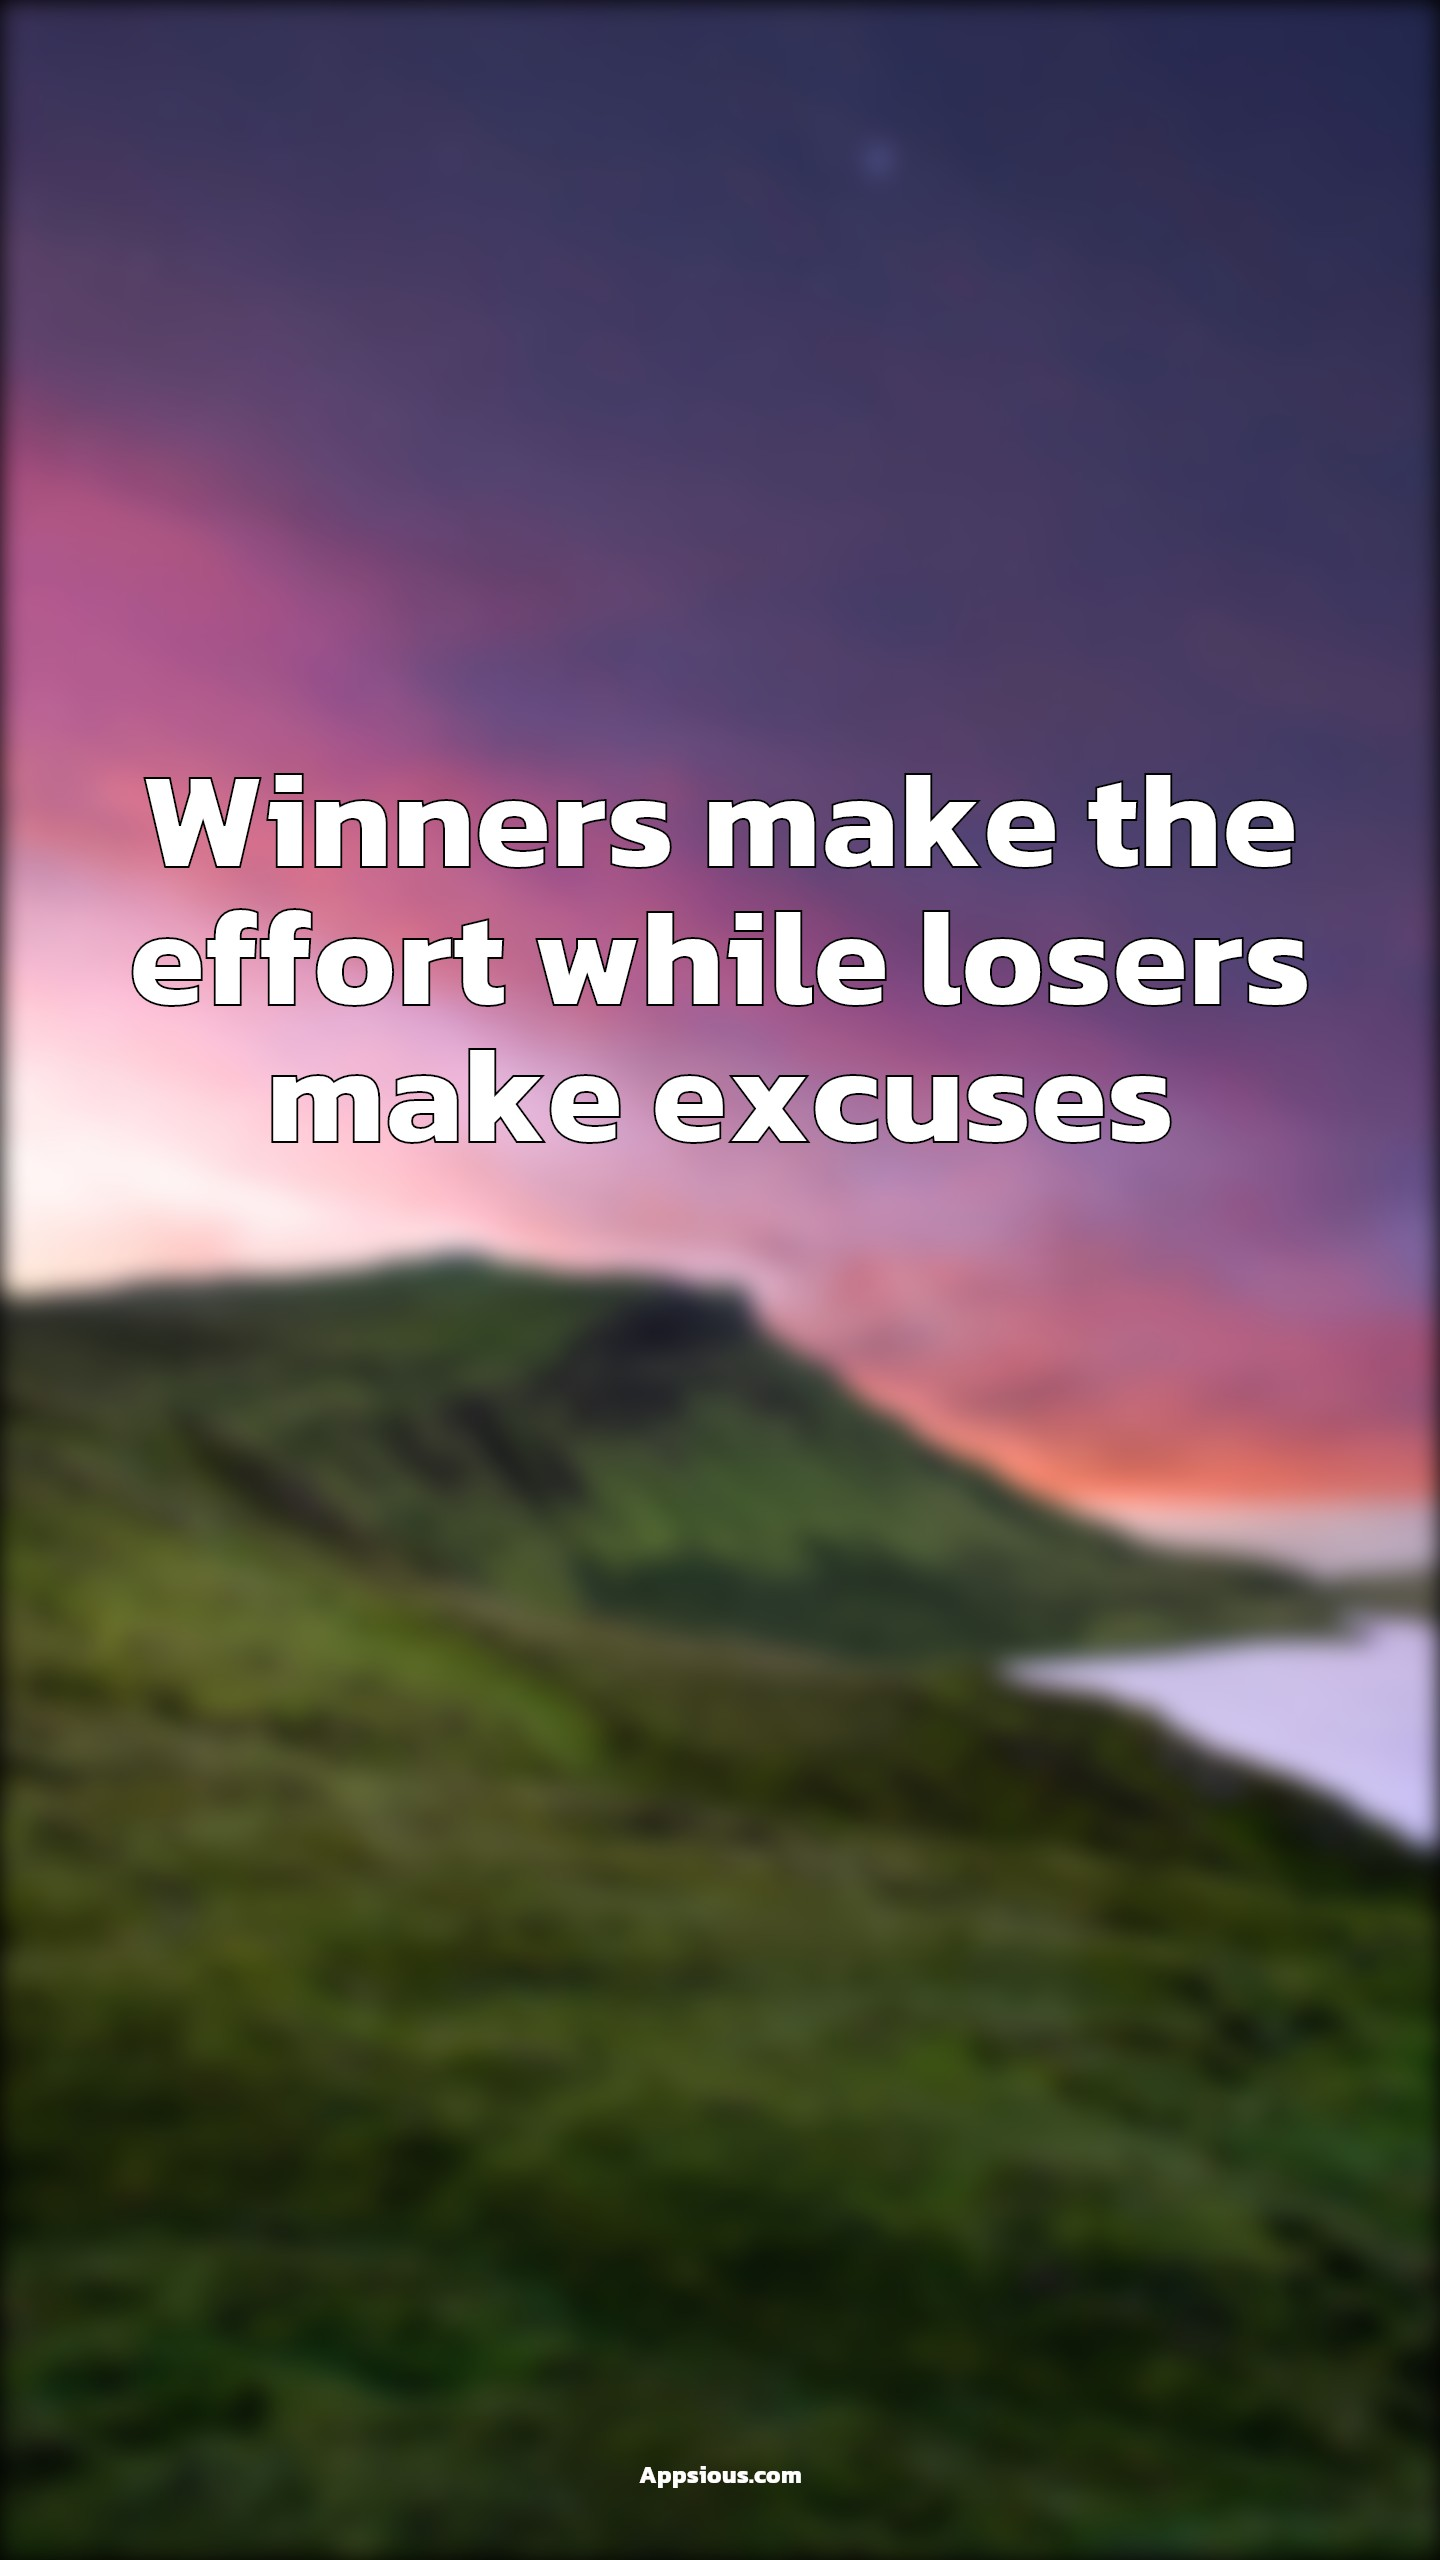 Winners make the effort while losers make excuses